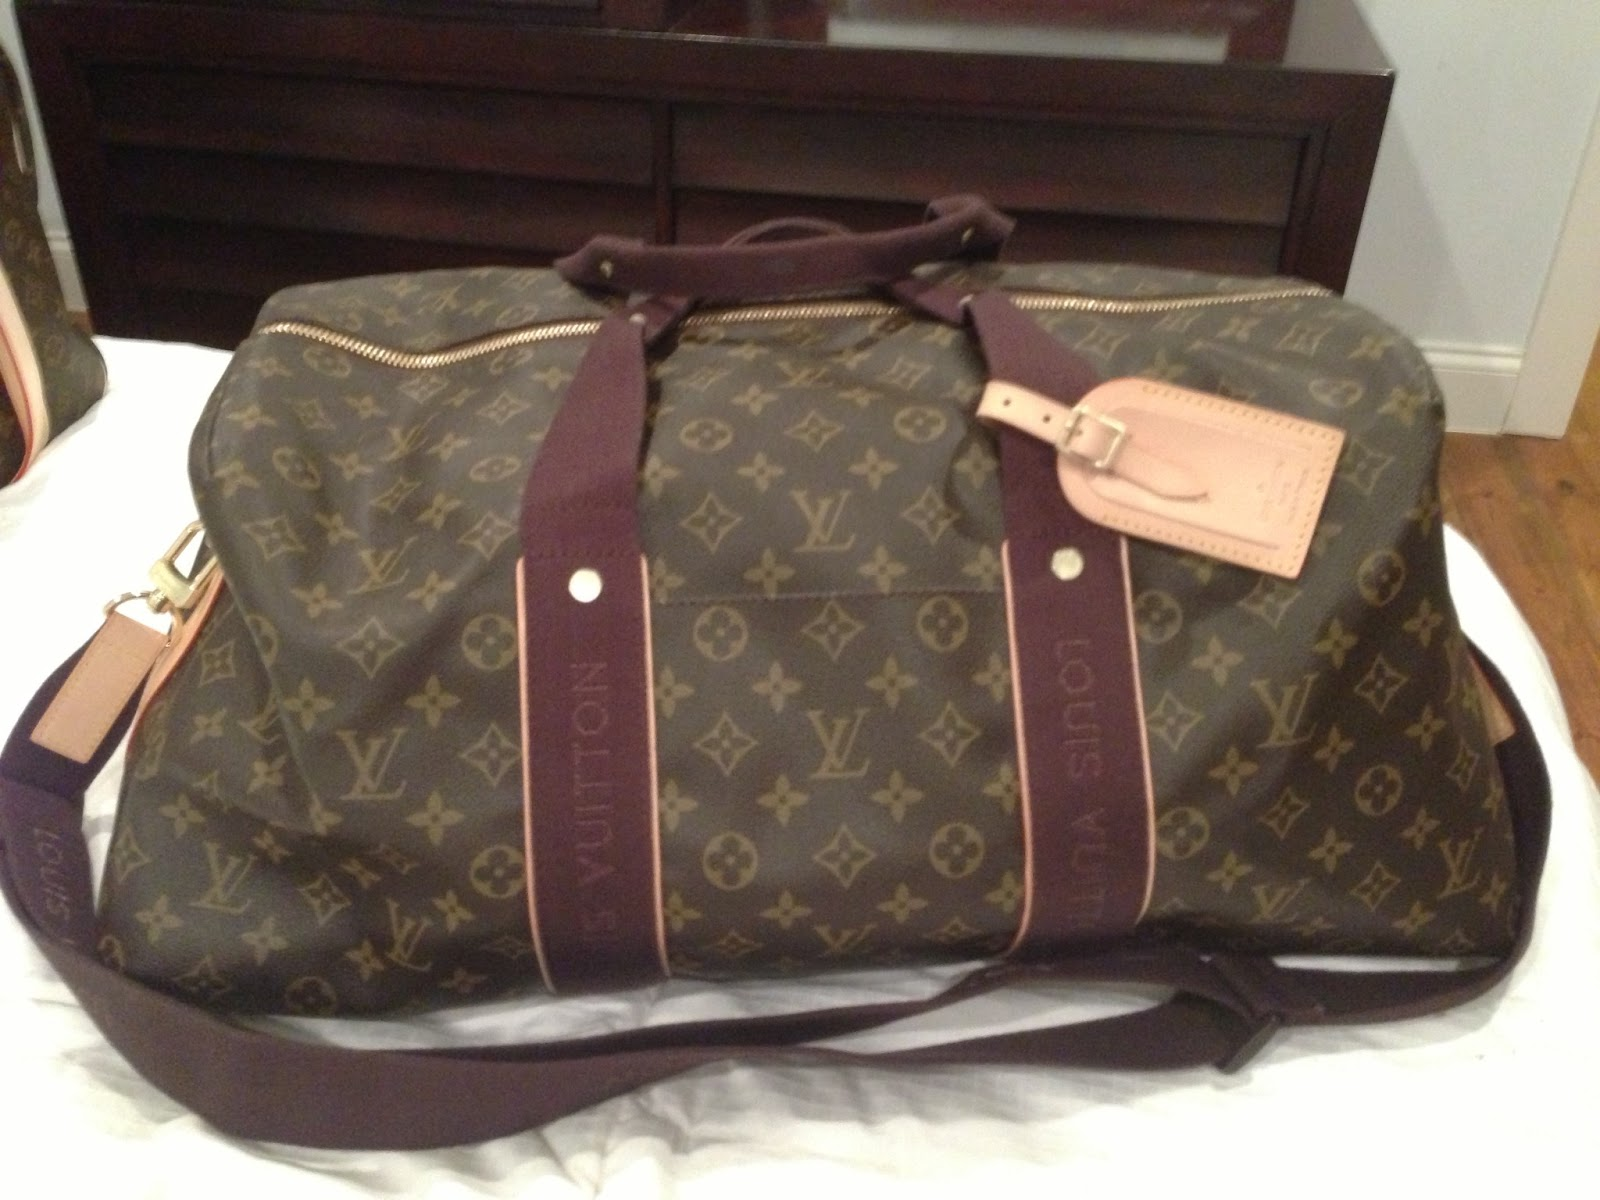 purse princess replica louis vuitton monogram weekender by kate. Black Bedroom Furniture Sets. Home Design Ideas